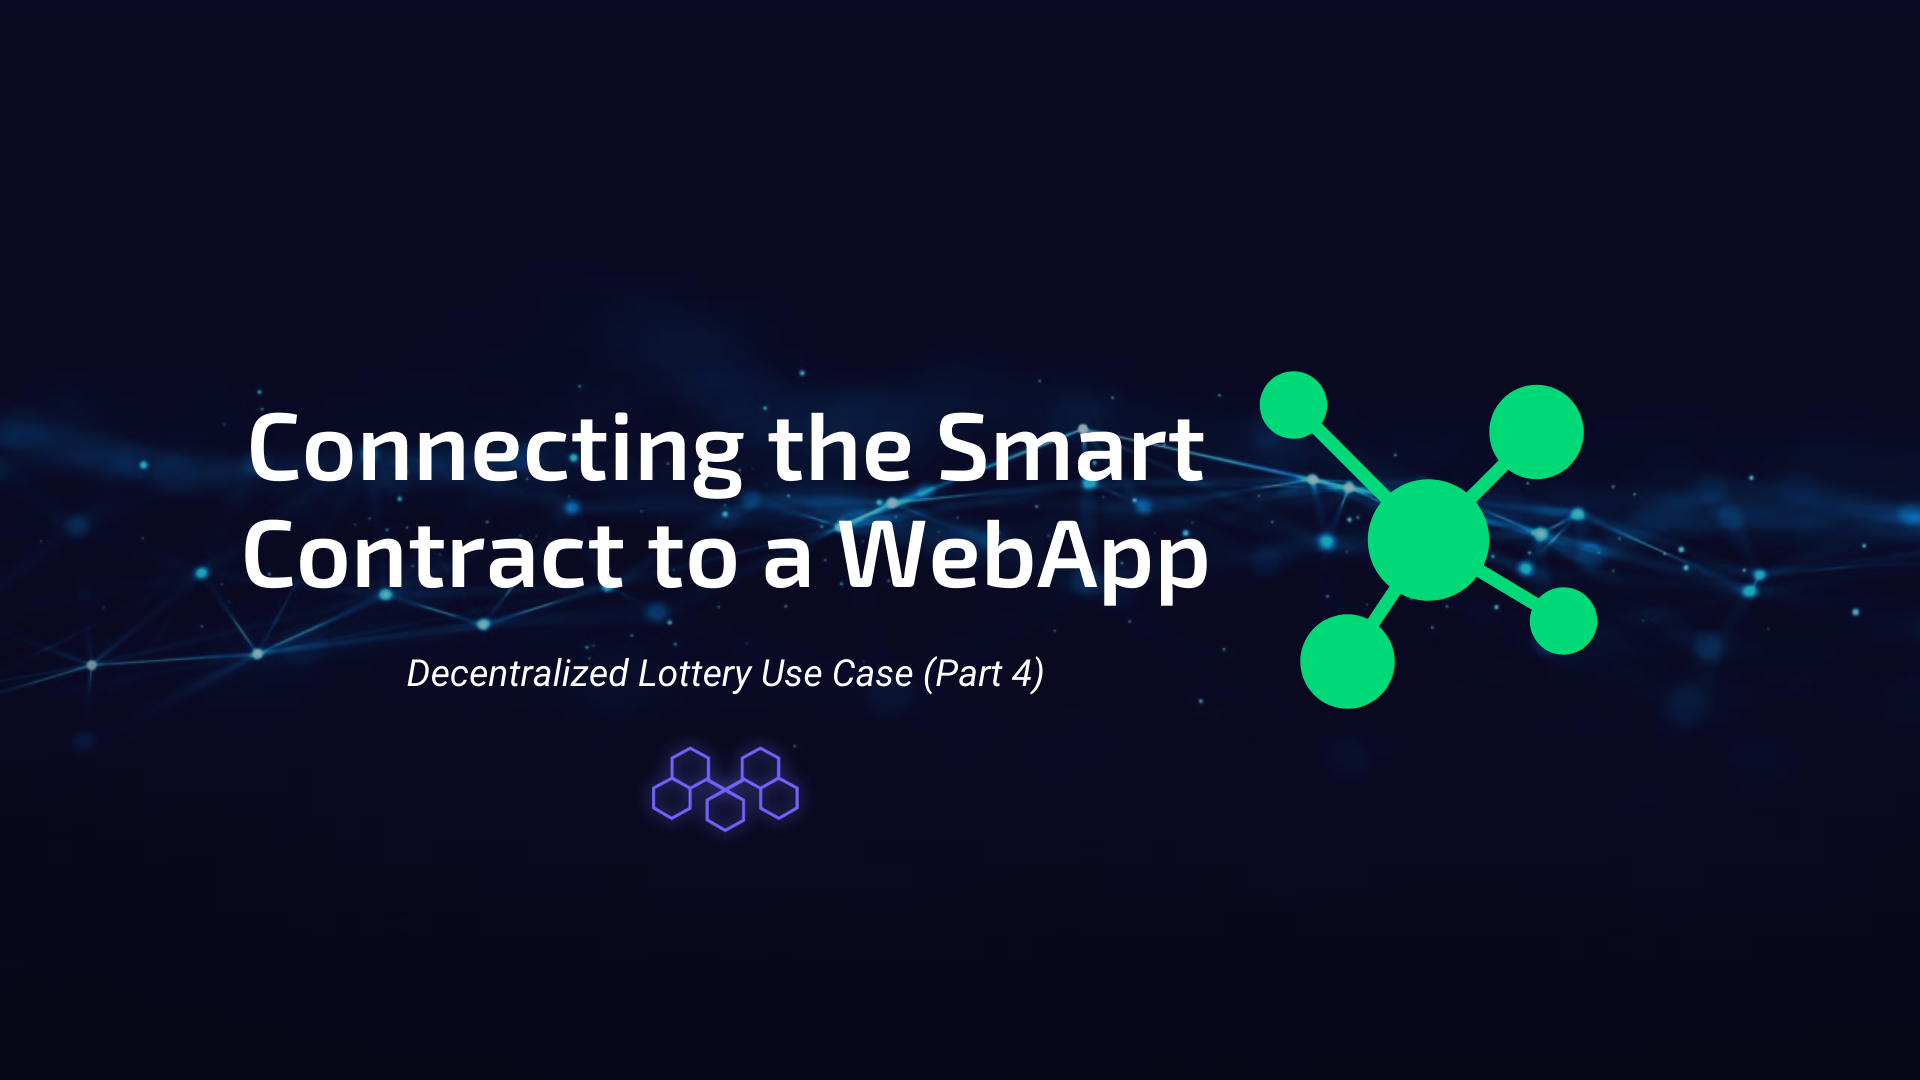 Connecting the Smart Contract to a WebApp